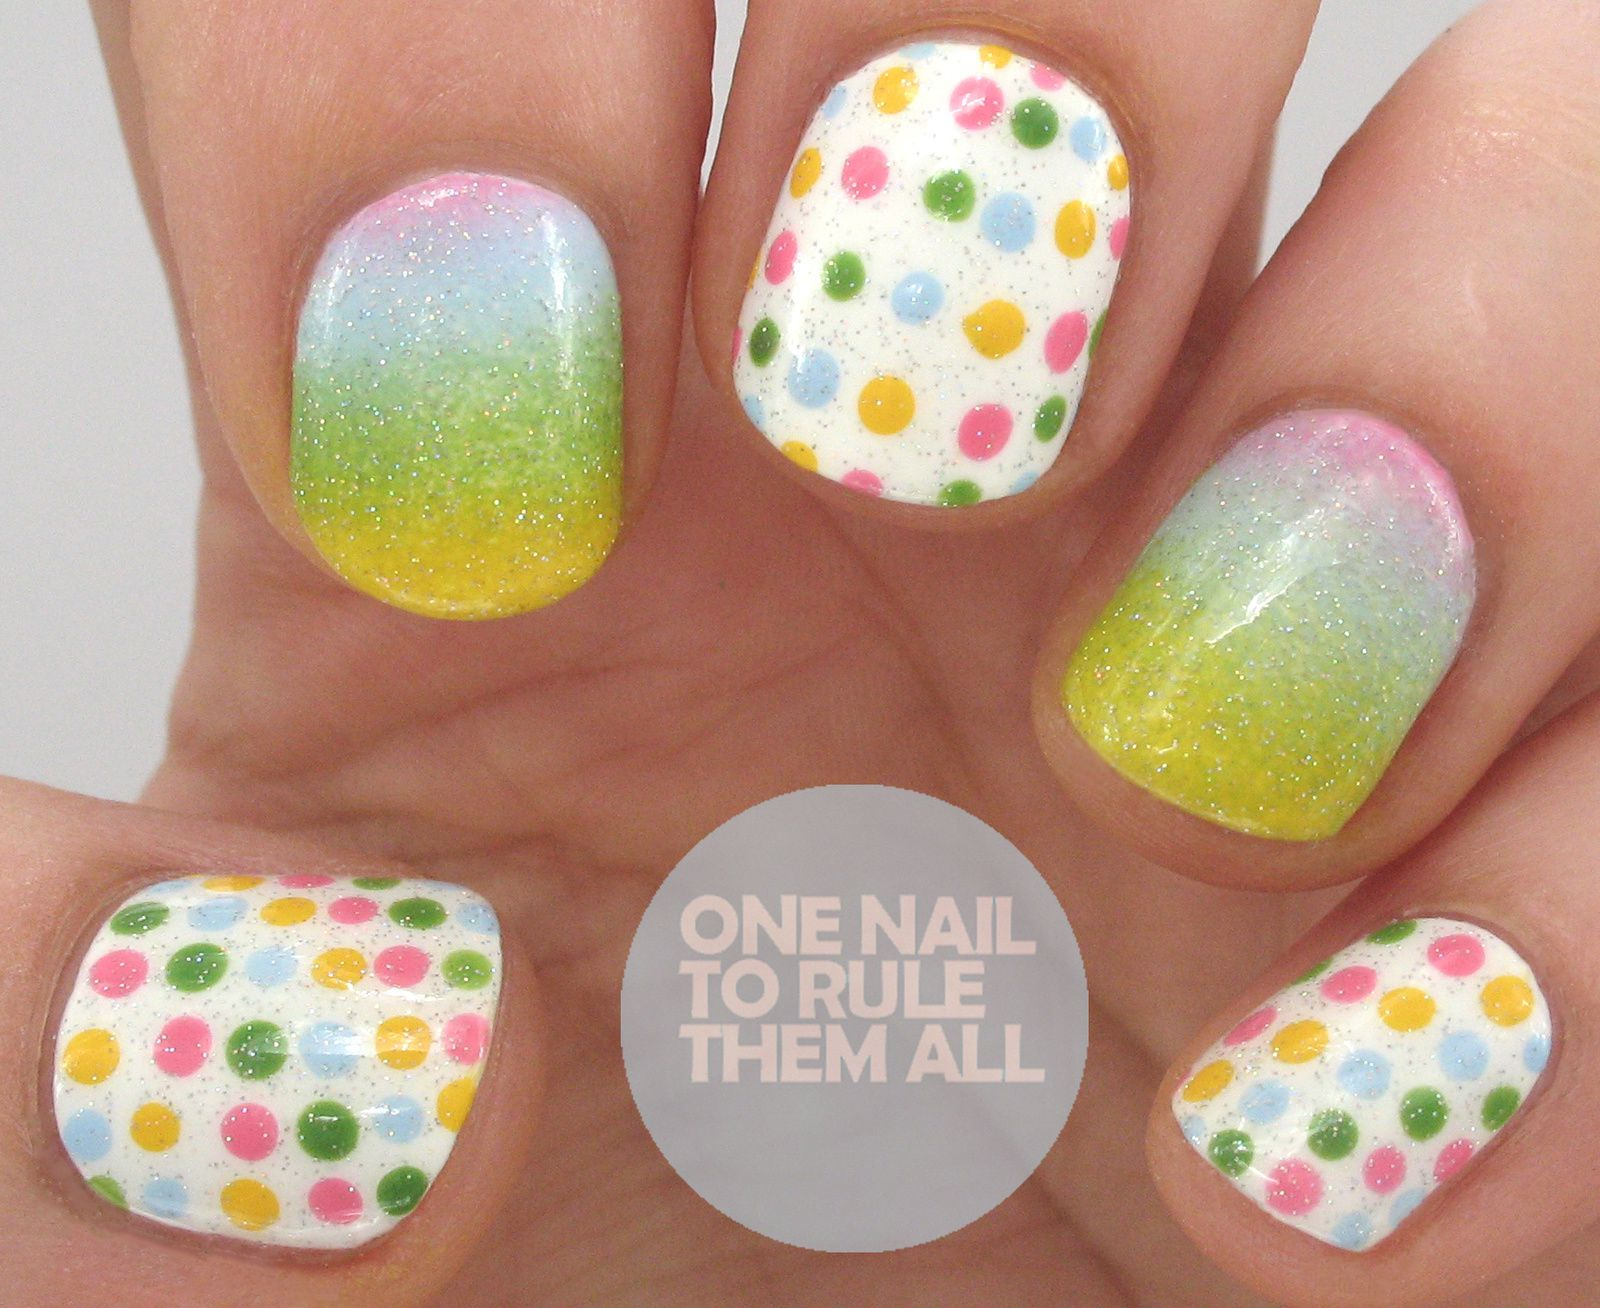 One Nail To Rule Them All for Lucy's Stash - Gradient Spots | Guest post